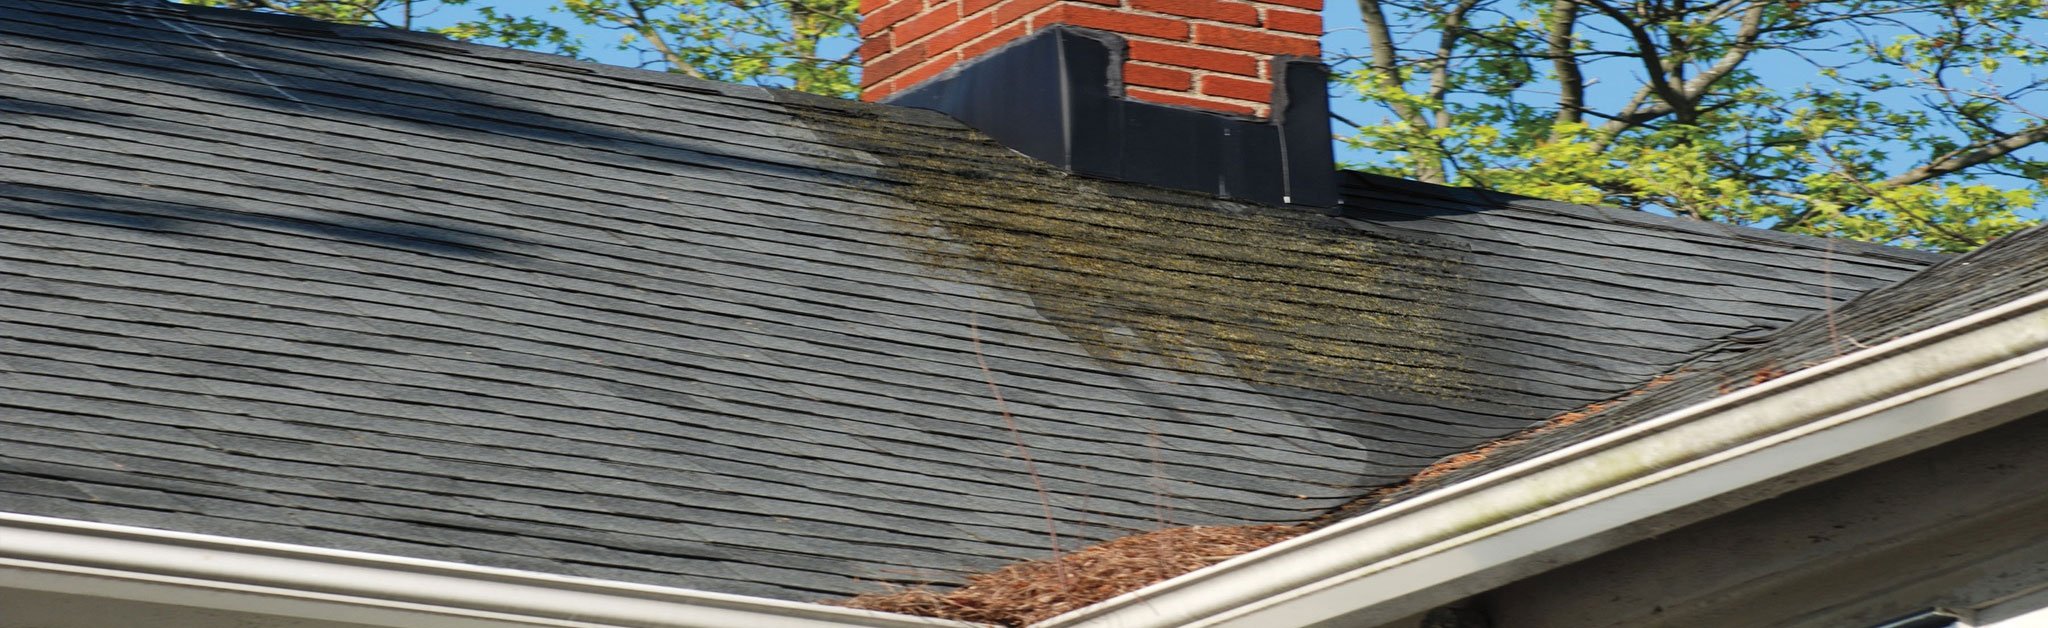 Reveles Roofing Images